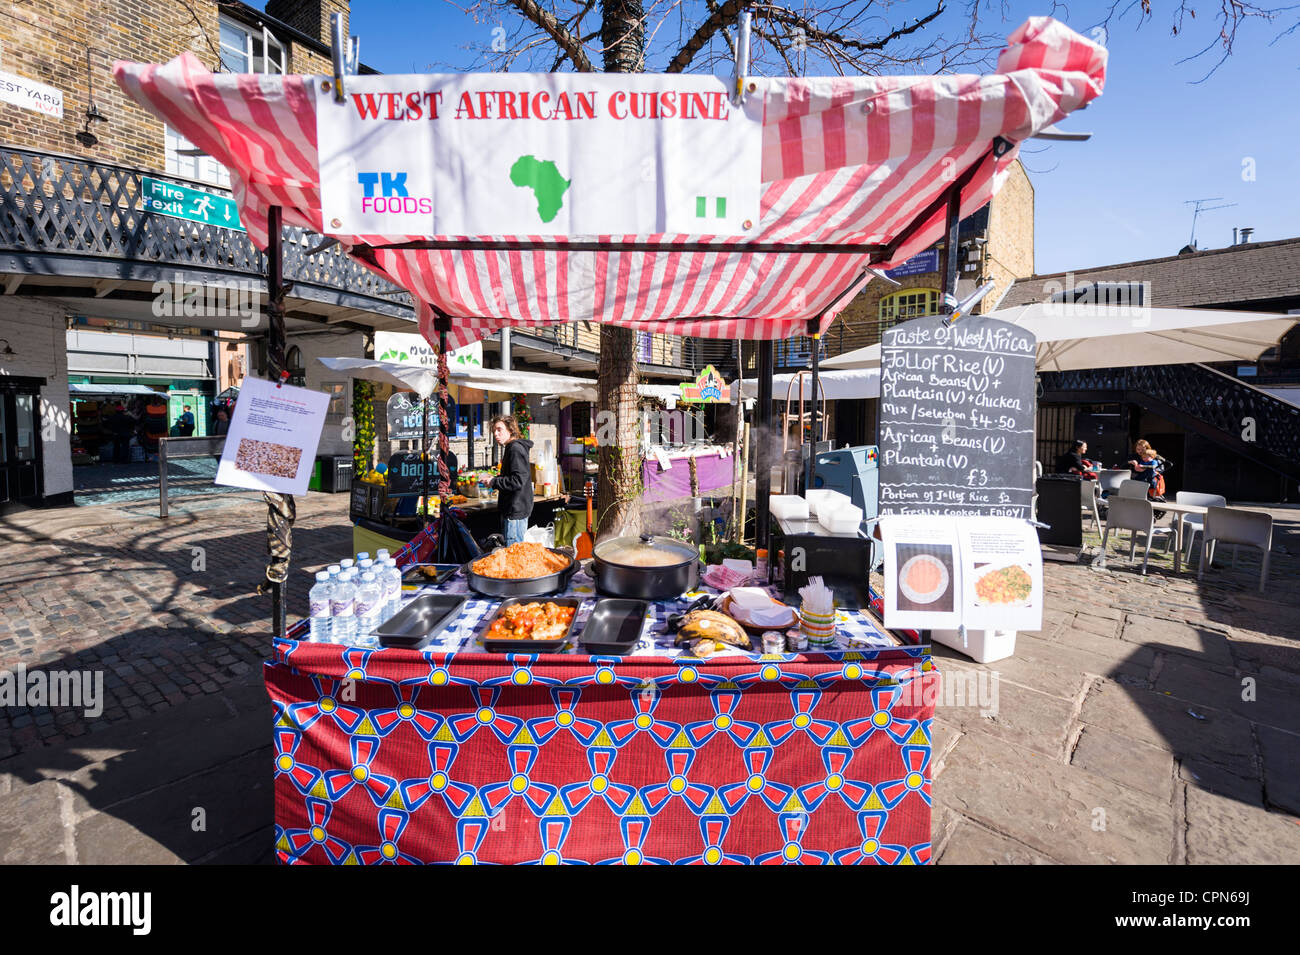 London Camden Town Lock Market Stables The Taste of West Africa stall fast food snack kiosk cuisine rice beans chicken - Stock Image